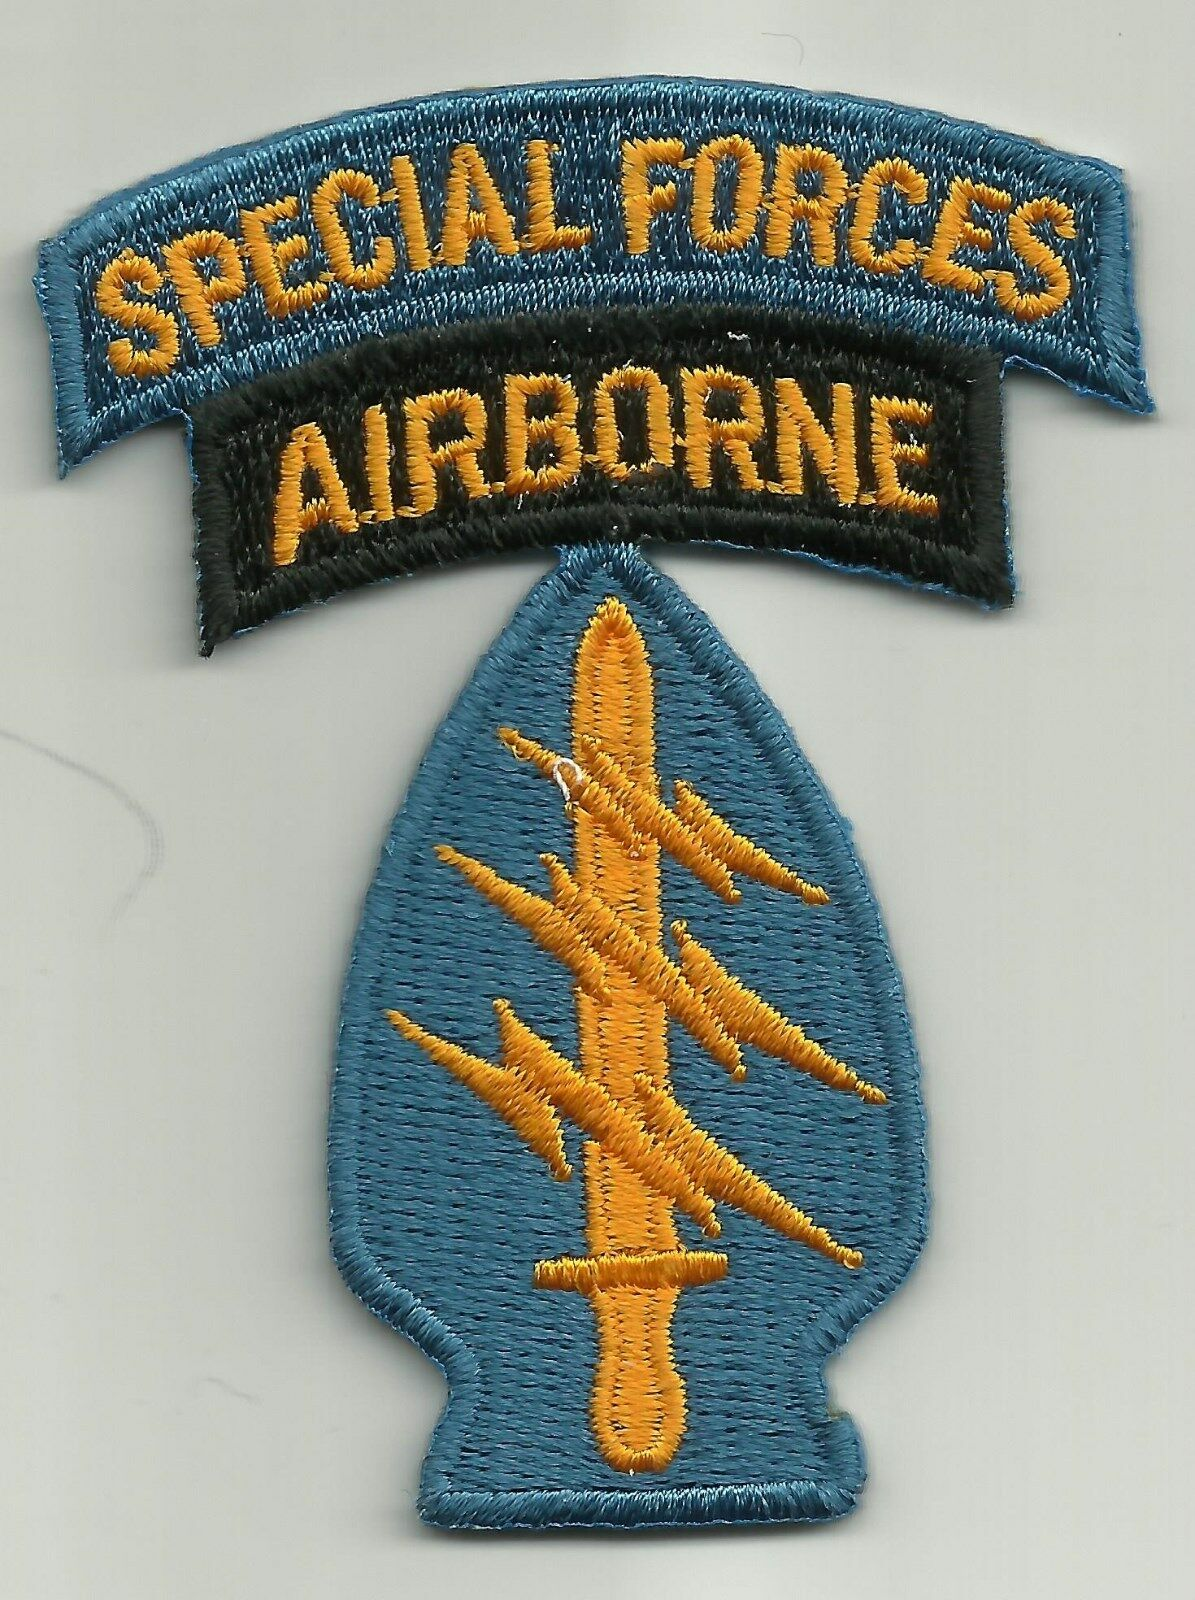 Special Forces Patches Army Popular Patch